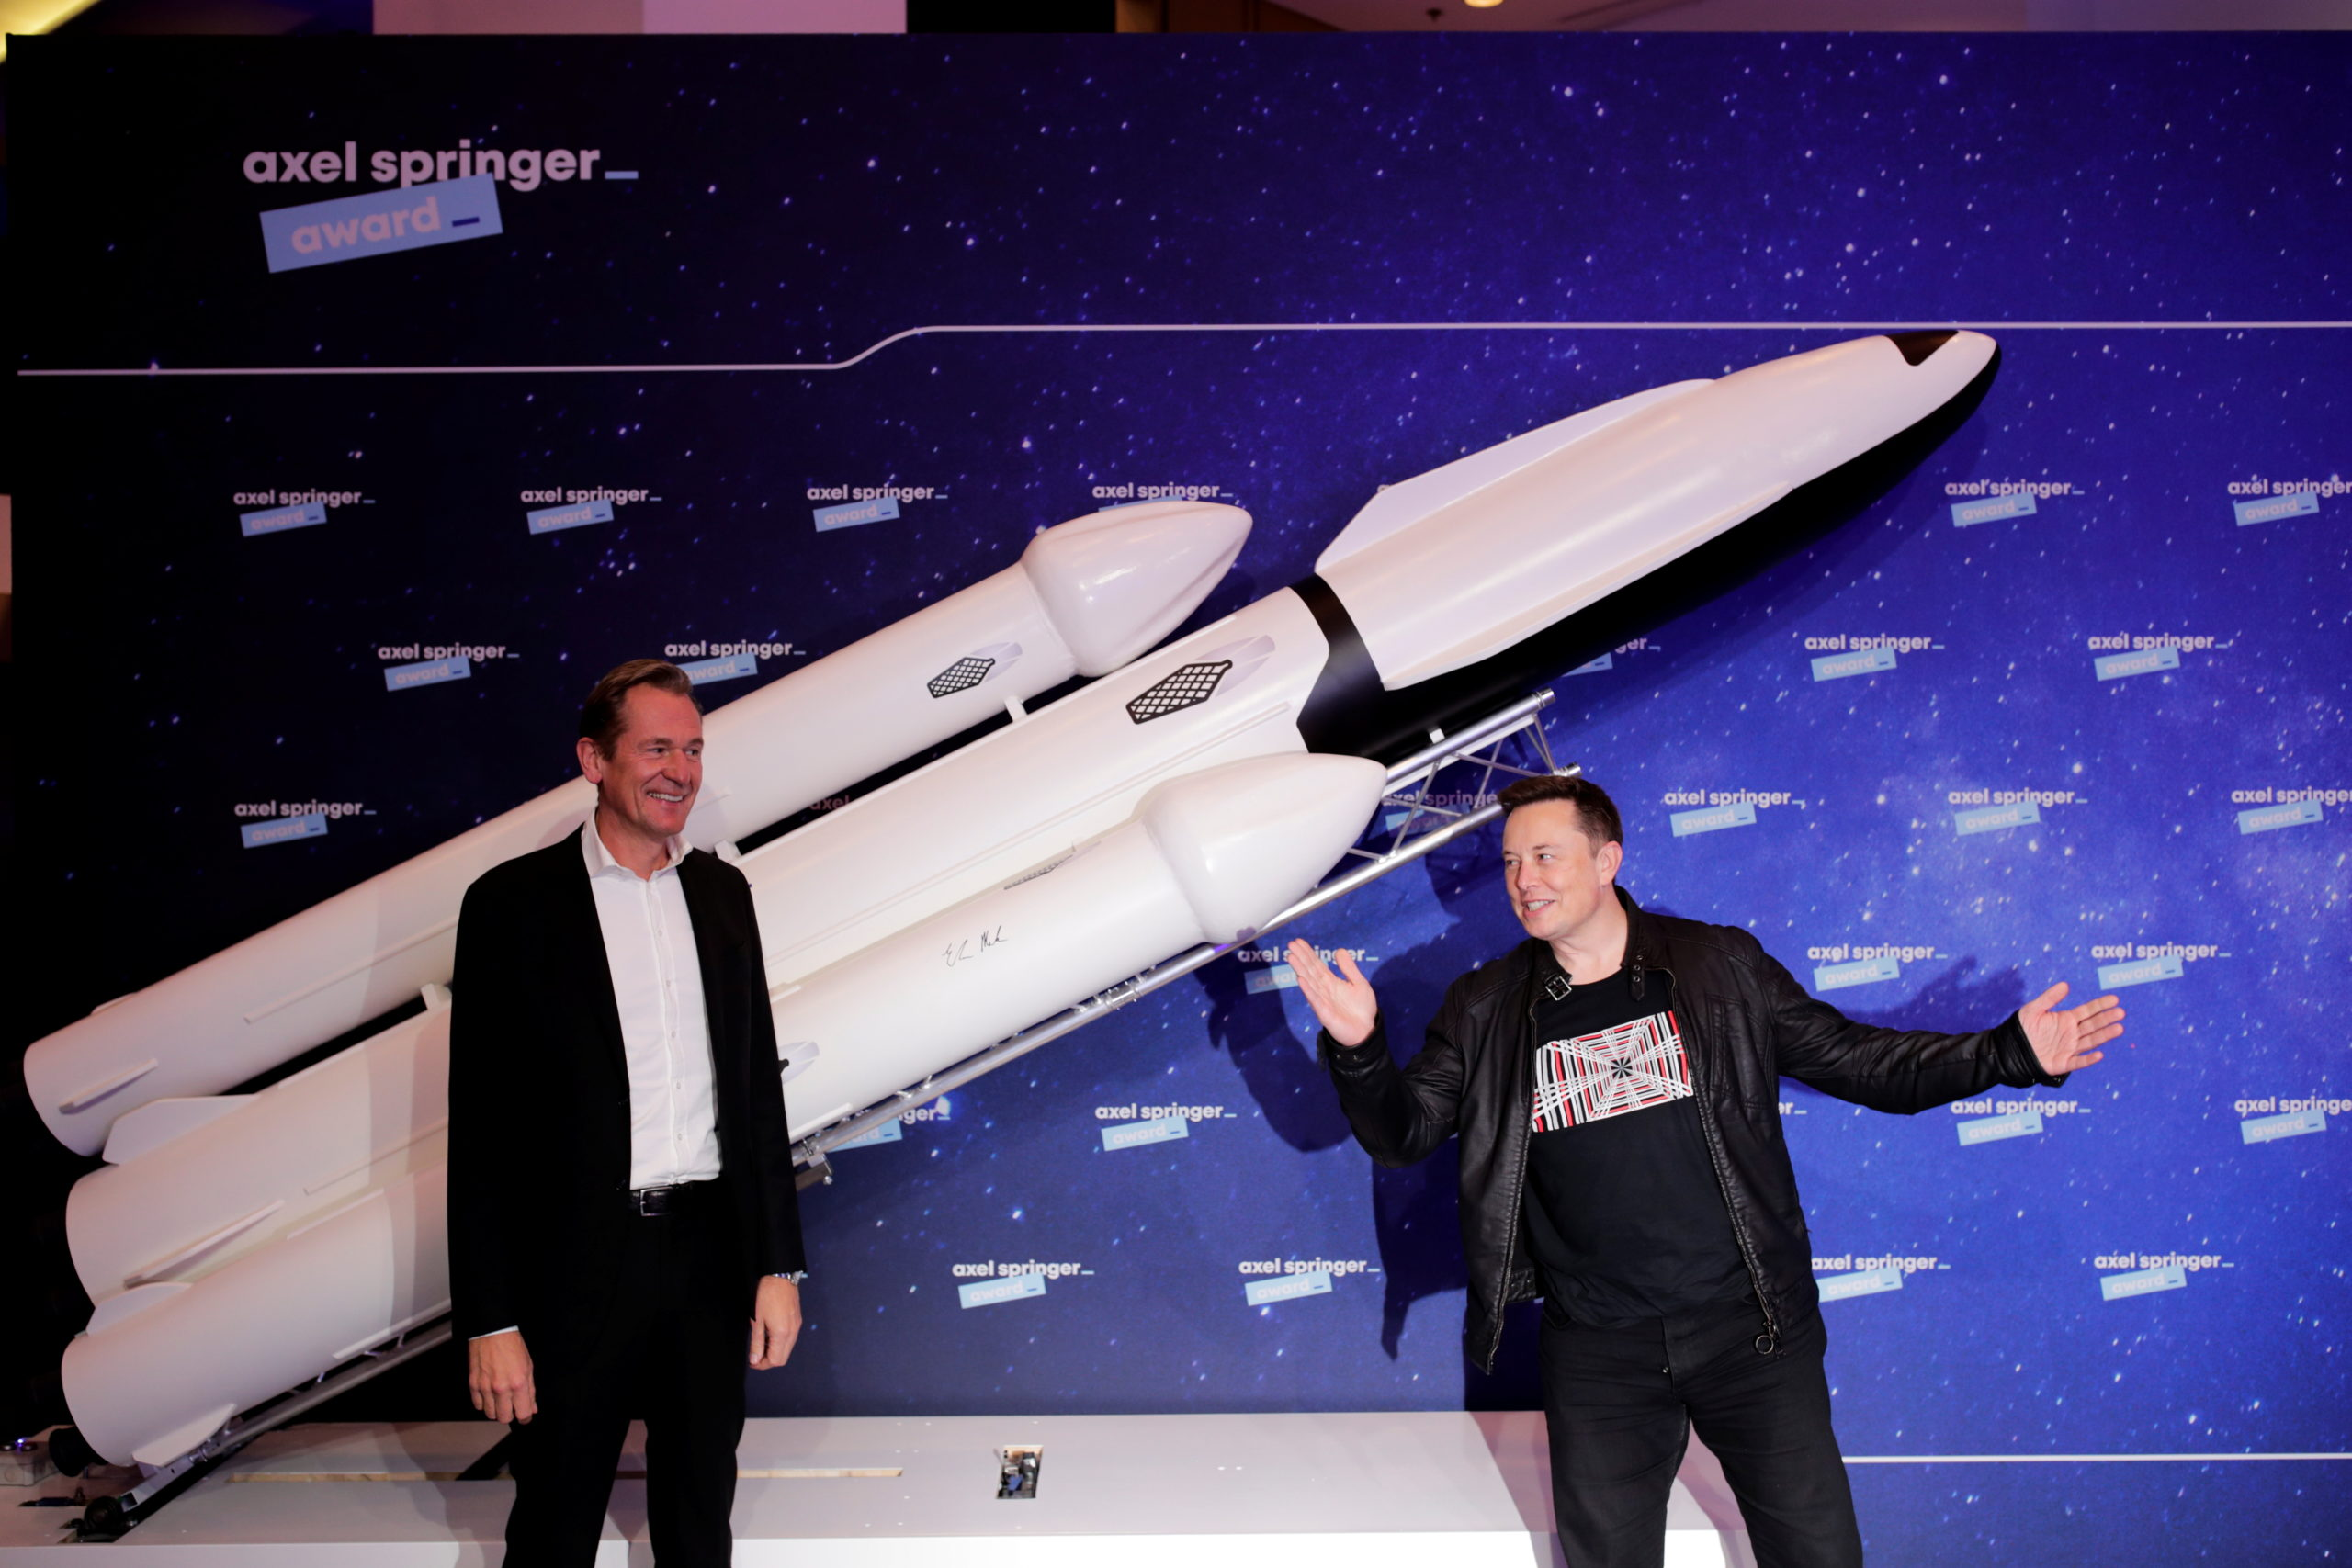 SpaceX owner and Tesla CEO Elon Musk poses next to Axel Springer's Chairman of the Board Mathias Doepfner. (Photo by Hannibal Hanschke-Pool/Getty Images)